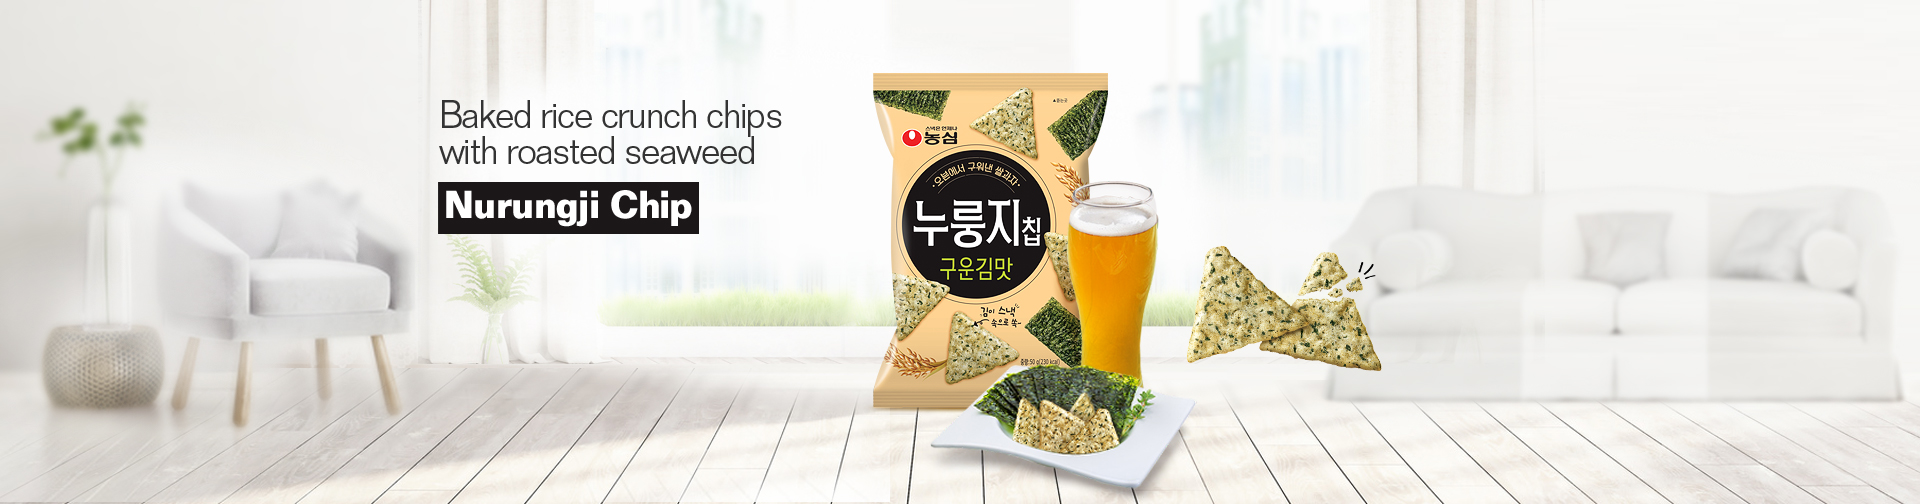 Baked Rice Crunch Chips